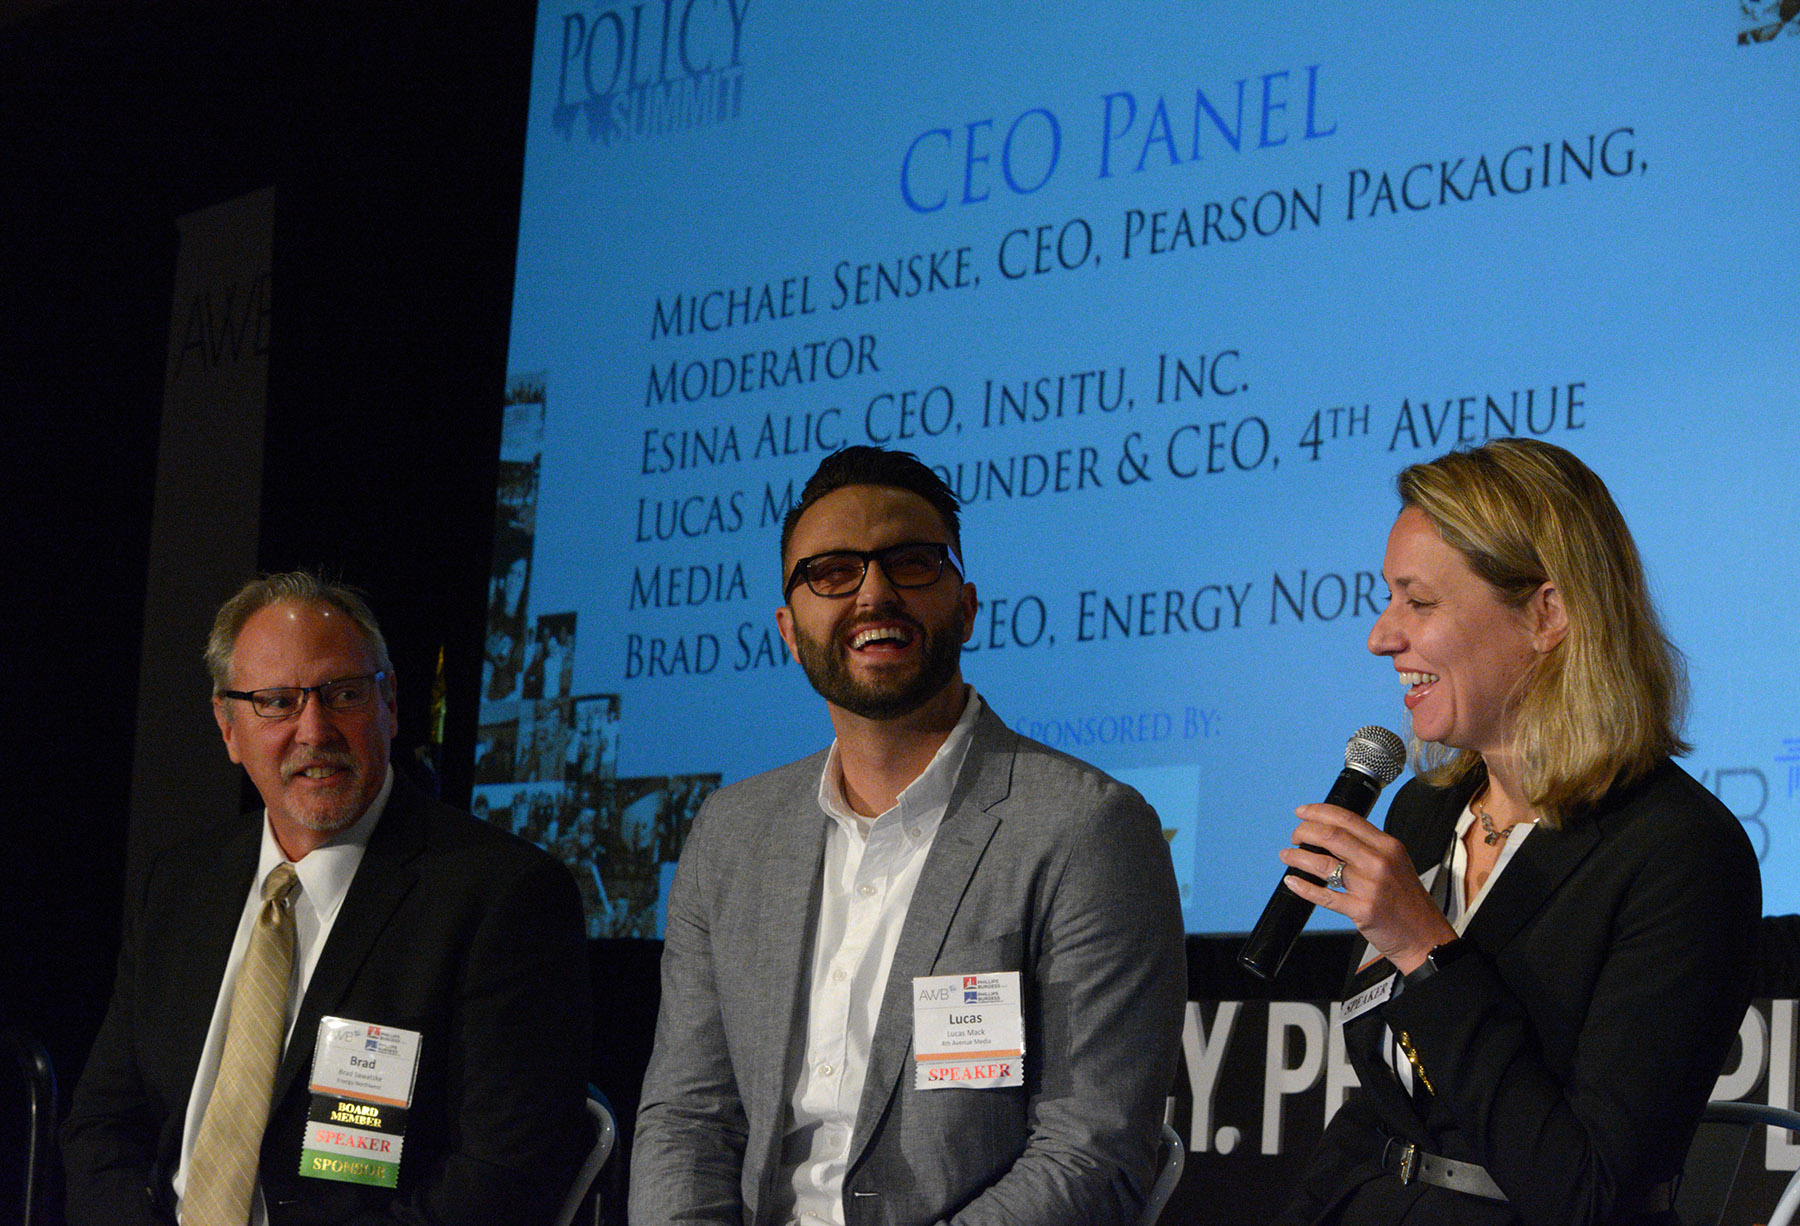 ps18-ceo-panel-alic1397.jpg